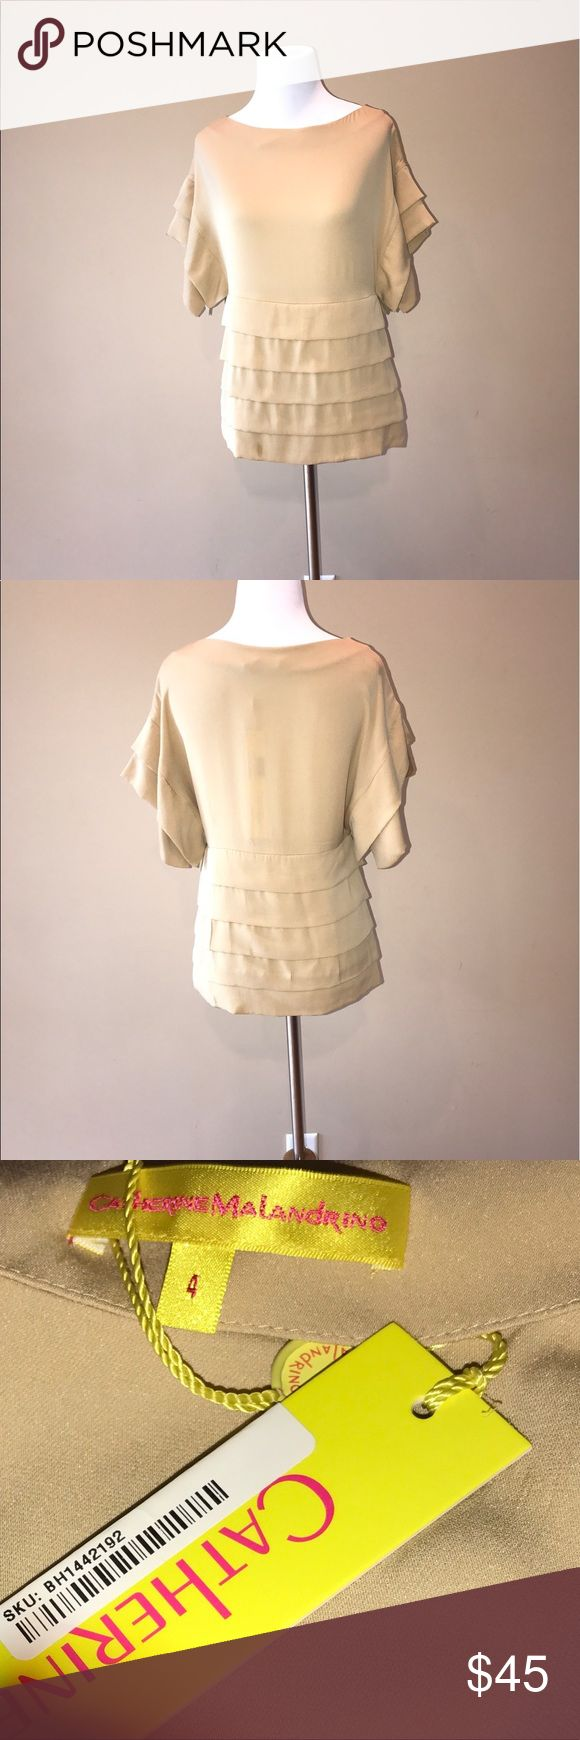 Catherine Malandrino silk blouse size 4 NWT Catherine Malandrino tiered silk champagne blouse NWT. Cap sleeve. Bust 32 inches. Length 23.5 inches. 100%silk. No trades but offers are welcome. Catherine Malandrino Tops Blouses